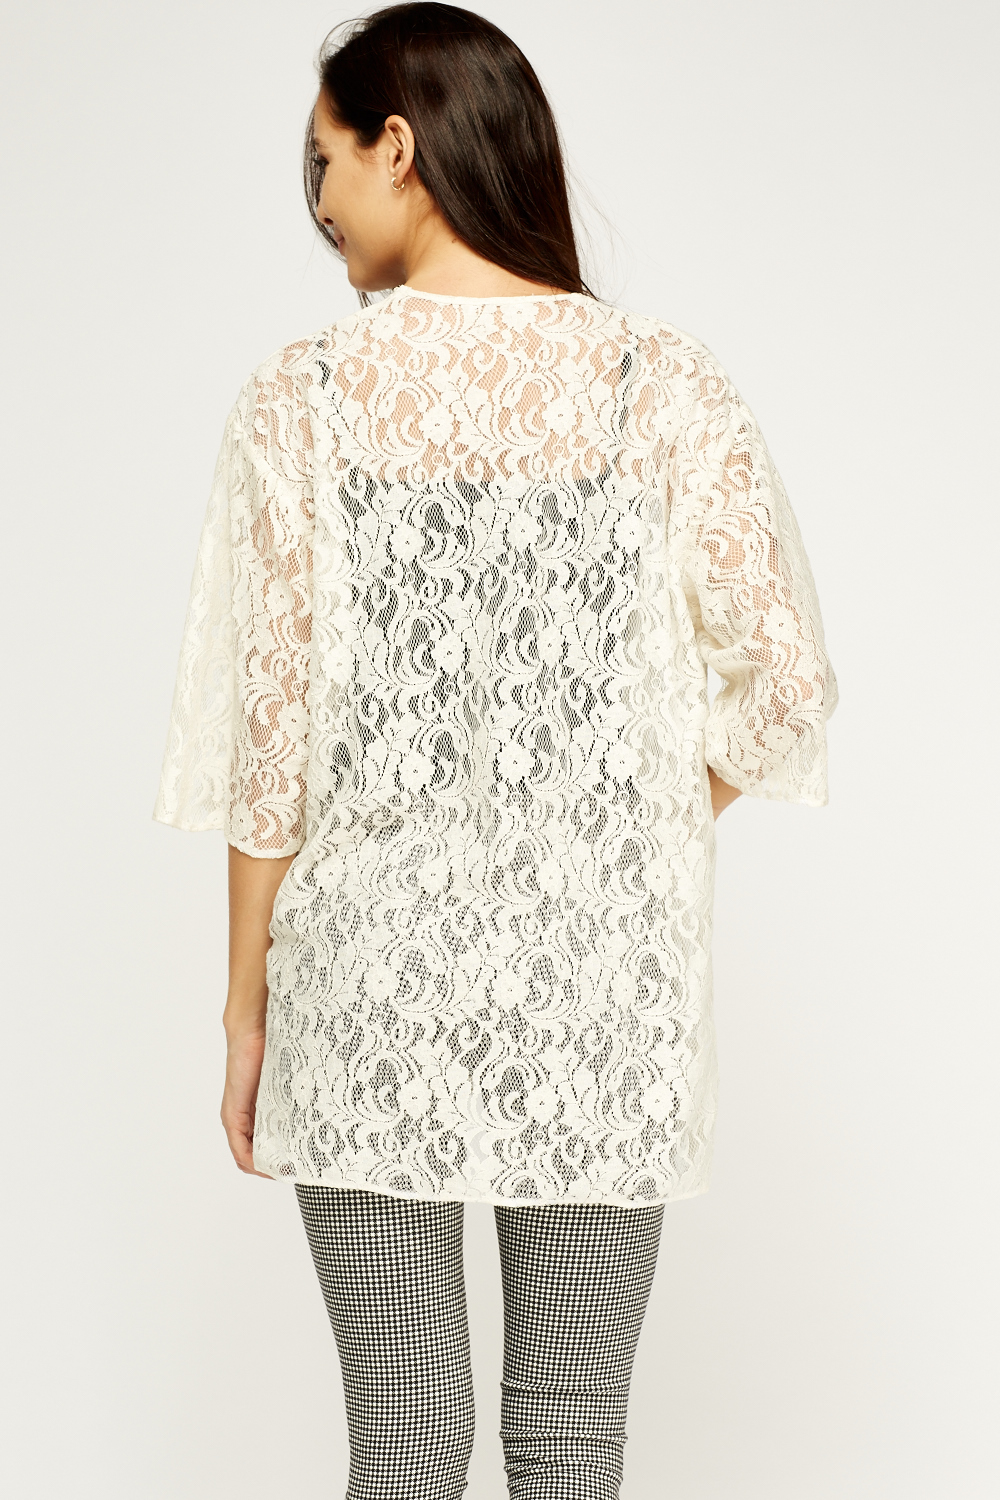 Lace Cardigans. Clothing. Women. Womens Sweaters. Search Product Result. Product - JustVH Women's 3/4 Bell Sleeve Boho Floral Kimono Cardigan Cover up Lace Stitching Blouse Top. Product Image. Price $ Product Title. JustVH Women's 3/4 Bell Sleeve Boho Floral Kimono Cardigan Cover up Lace Stitching Blouse Top.